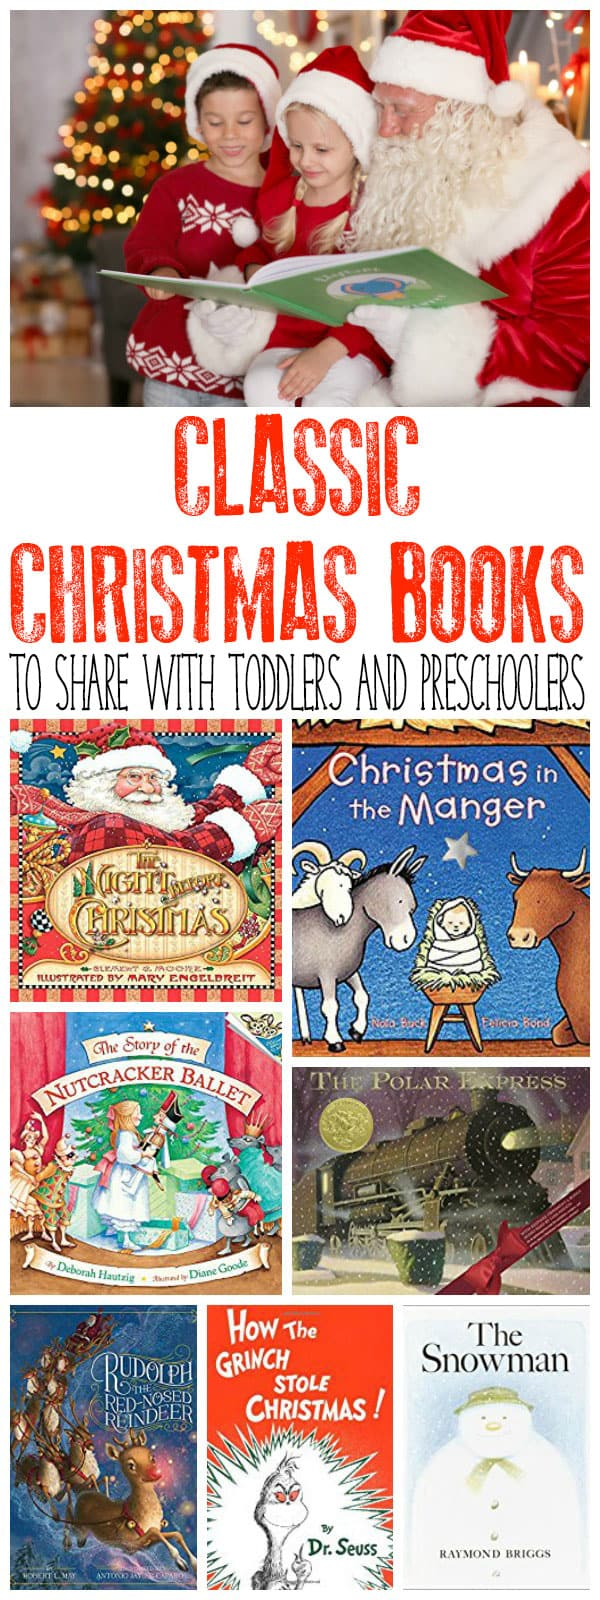 carefully chosen christmas books ideal to share with toddlers and preschoolers at home or in your - Classic Christmas Books